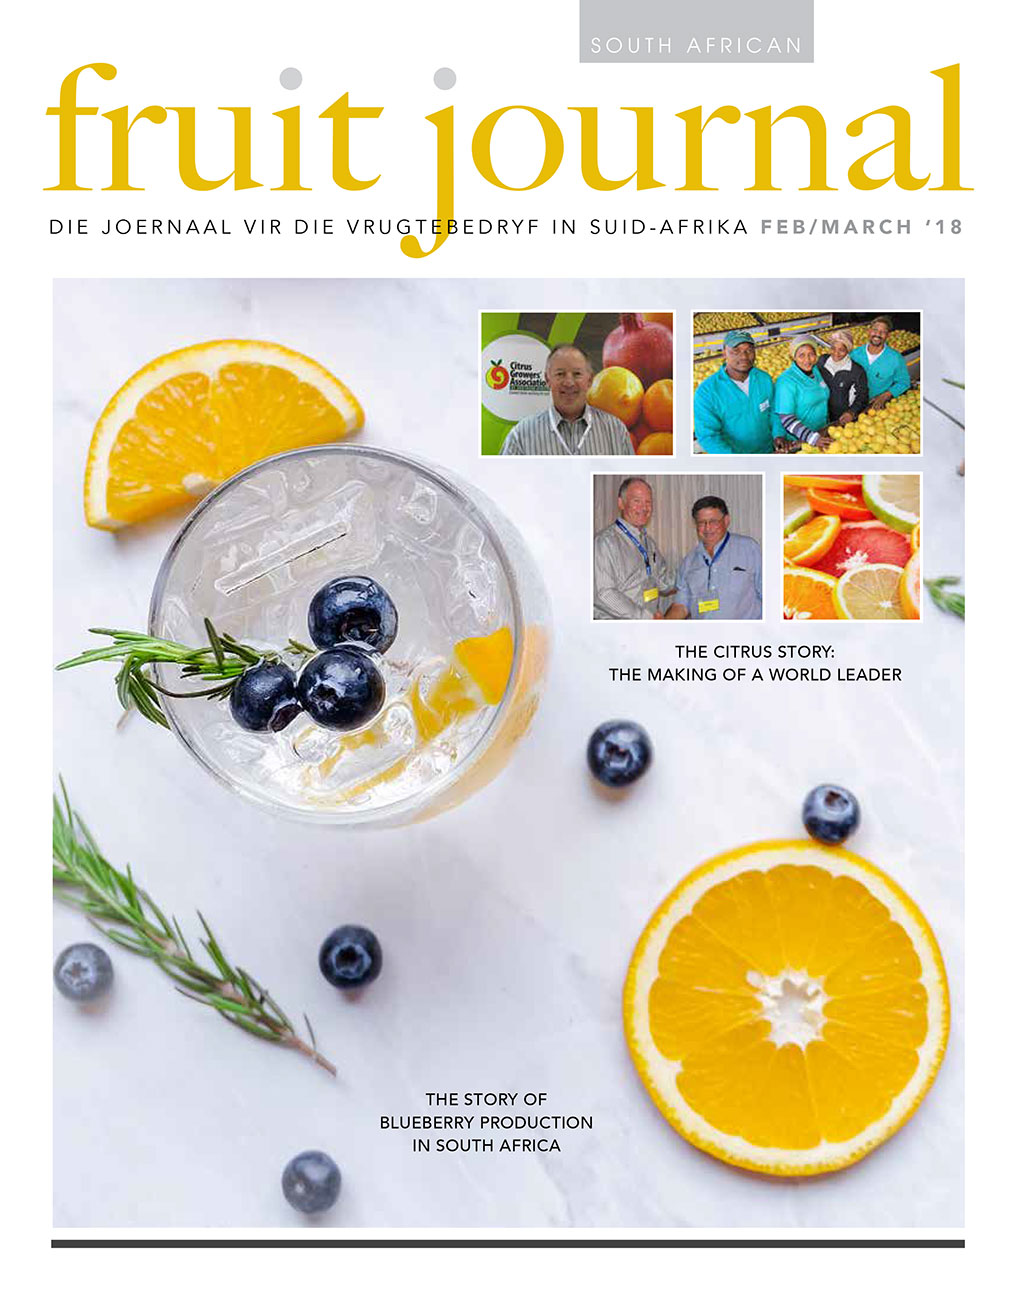 SA Fruit Journal - Feb - March 2018 - Cover